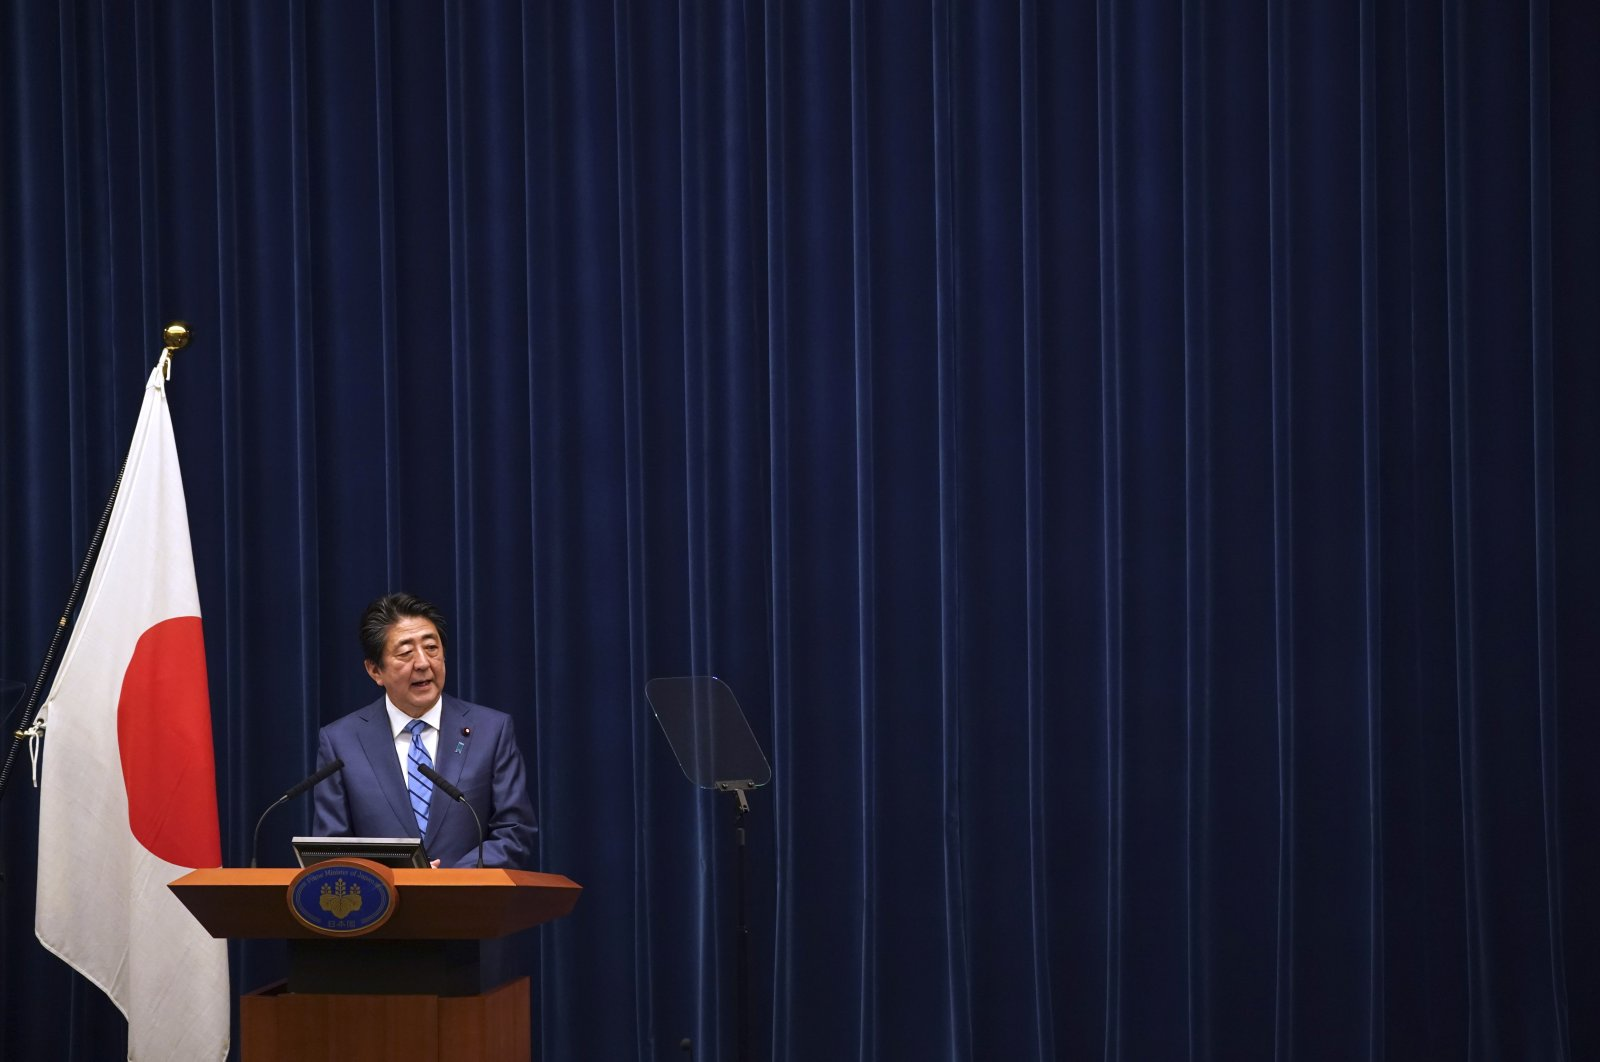 Japanese Prime Minister Shinzo Abe delivers his speech about the coronavirus situation in Japan at the prime minister's office in Tokyo Saturday, March 14, 2020. (AP Photo)